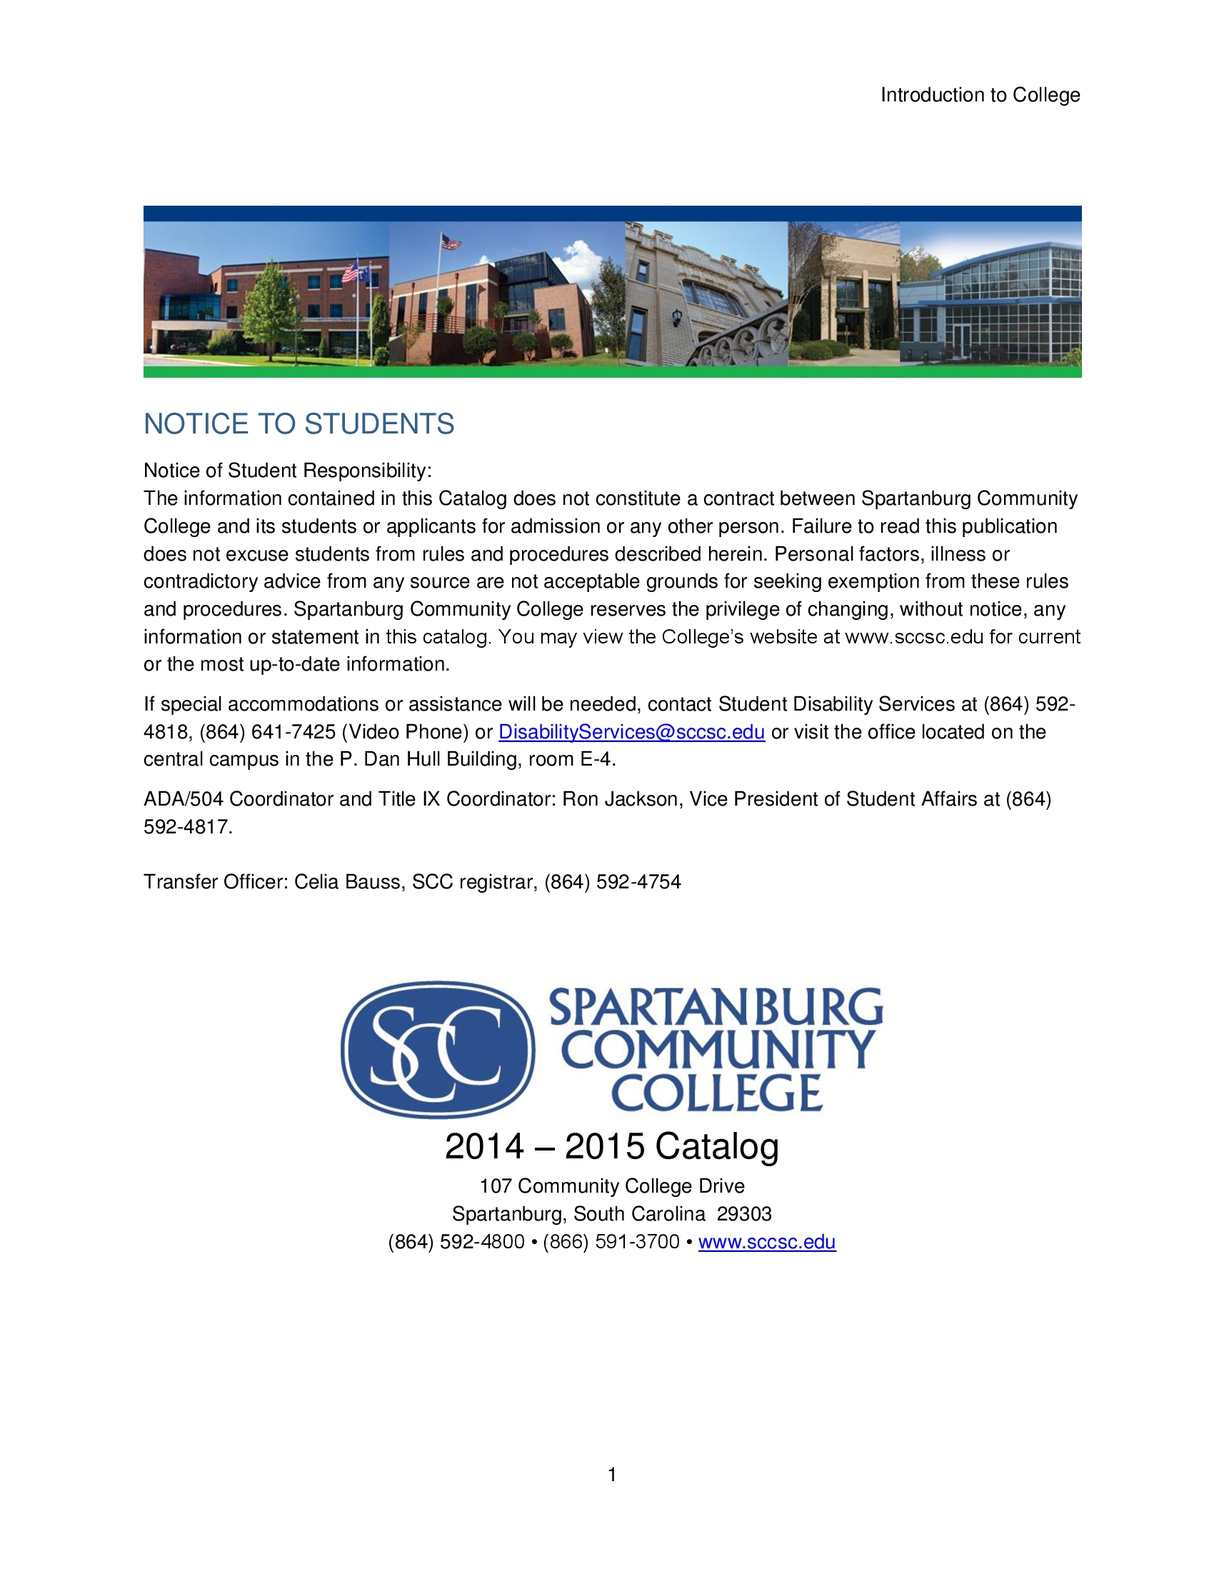 Calamo spartanburg community college 2014 2015 catalog fandeluxe Choice Image